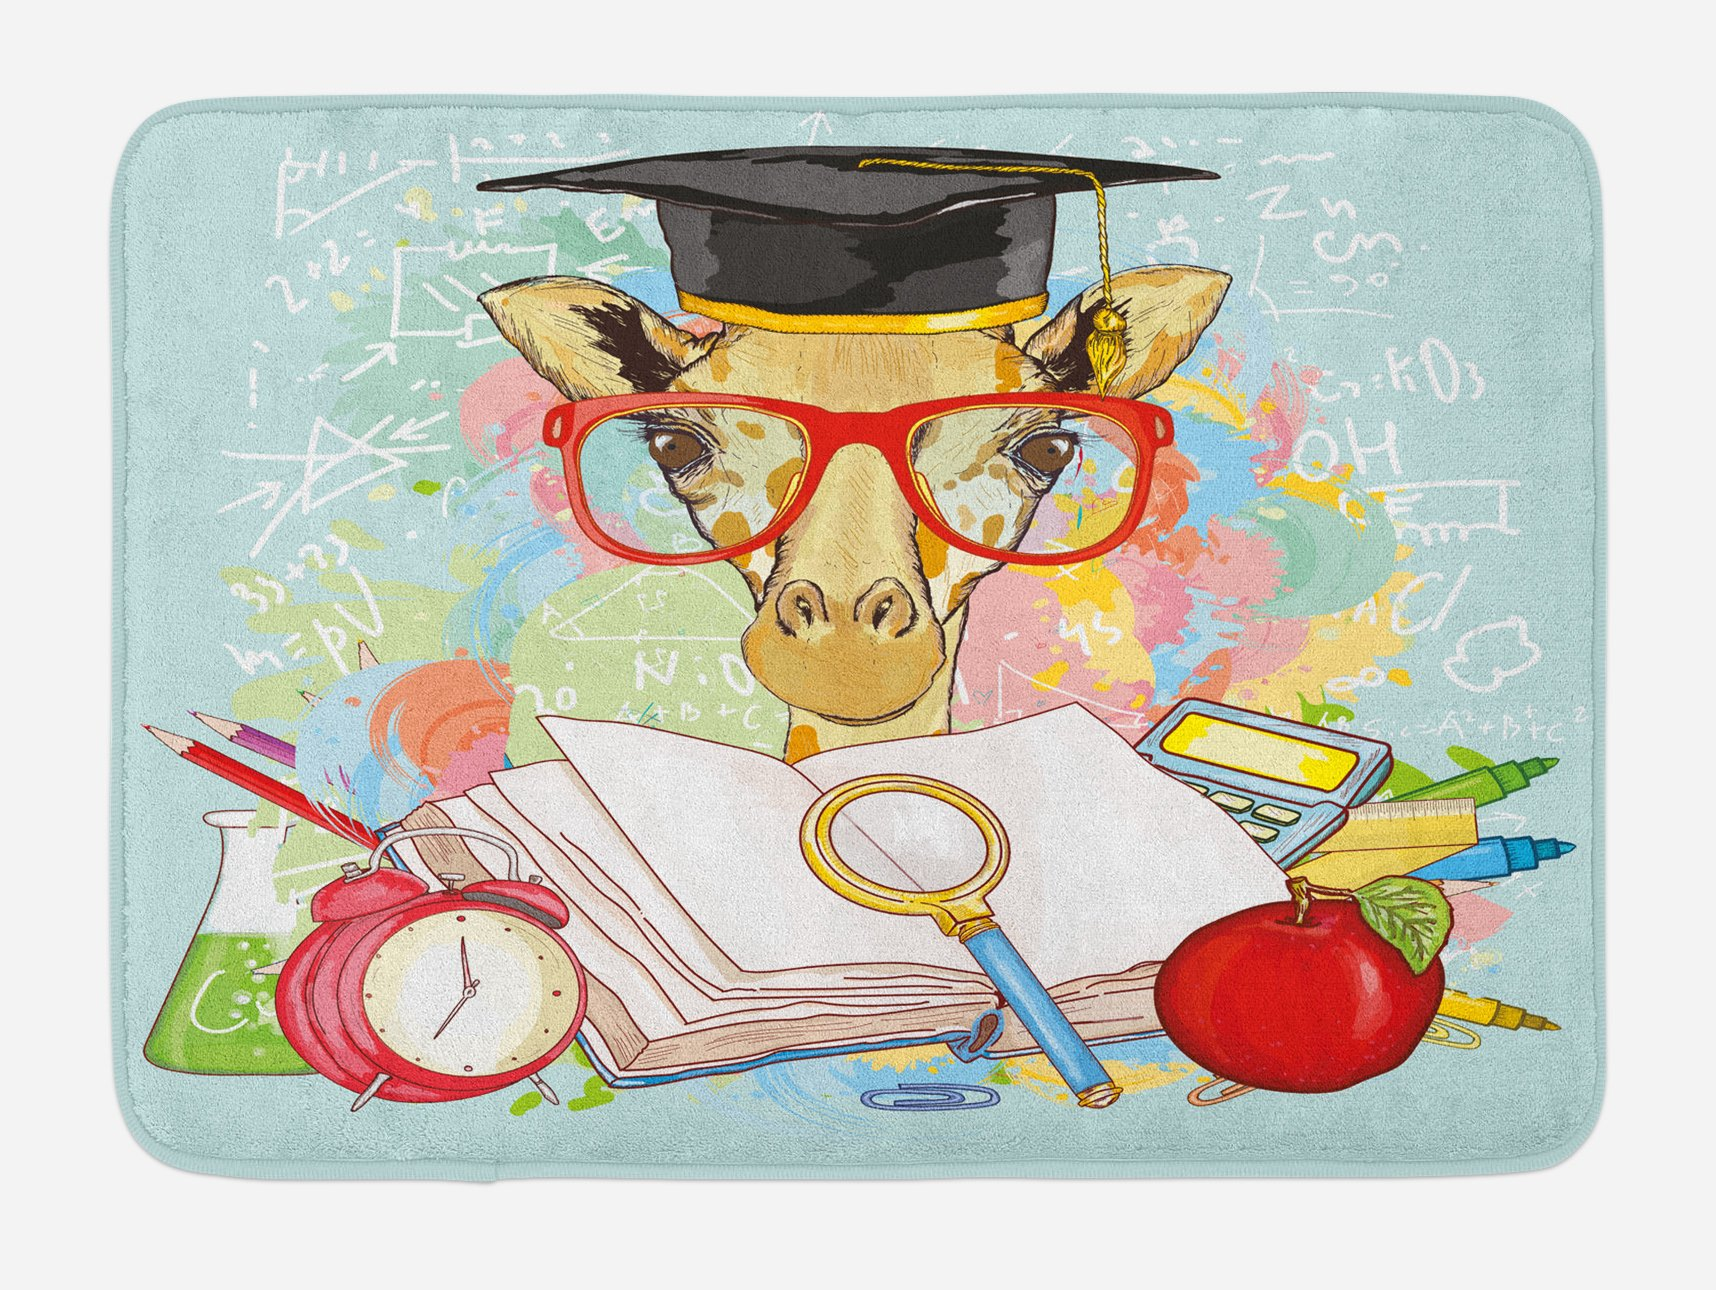 Ambesonne Graduation Bath Mat, Hipster Giraffe Animal with Glasses and Cap Geek Student in Education School, Plush Bathroom Decor Mat with Non Slip Backing, 29.5 W X 17.5 W Inches, Multicolor